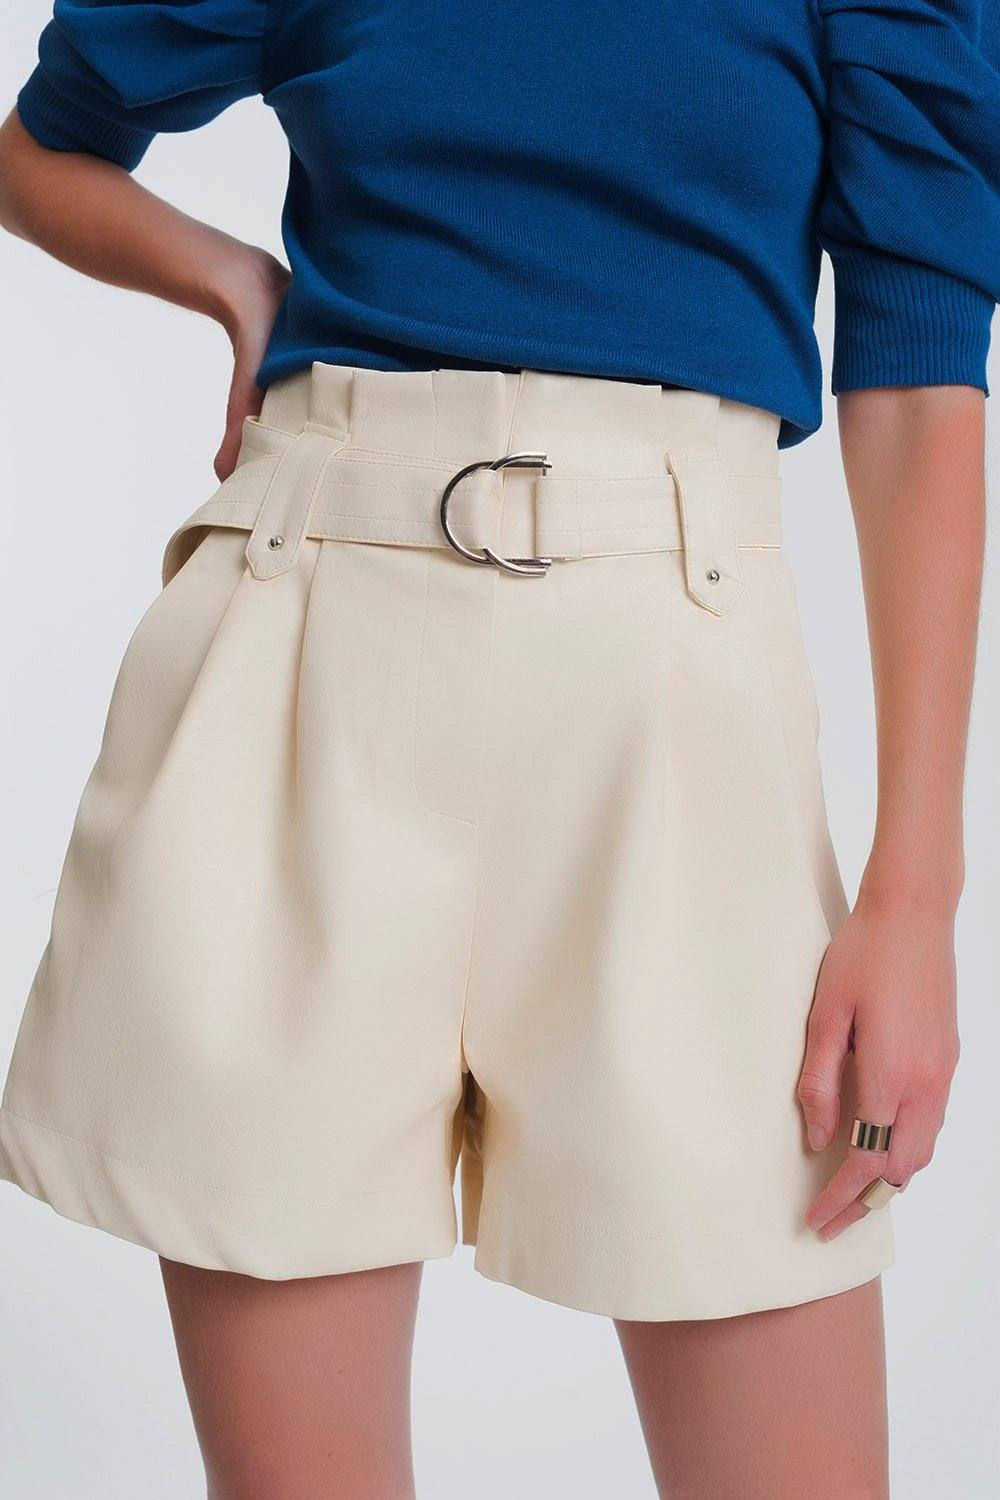 Q2 leather look short with pockets and paperbag waist